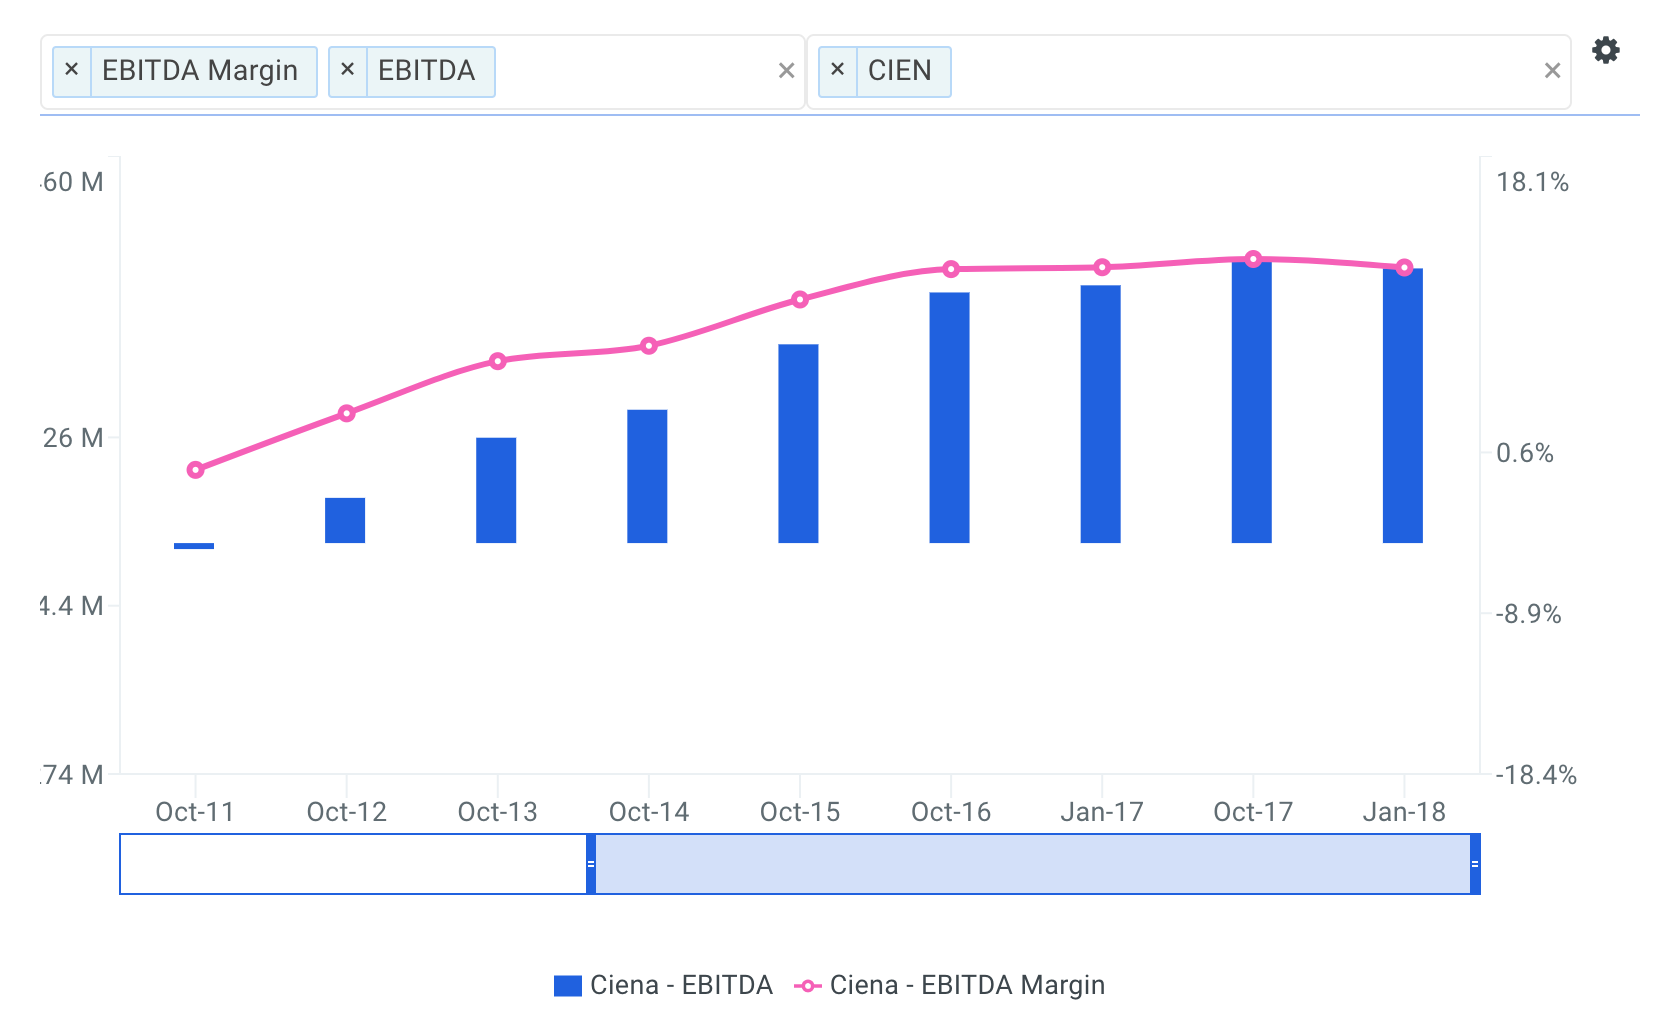 Ciena Historical and Projected EBITDA Margin Chart